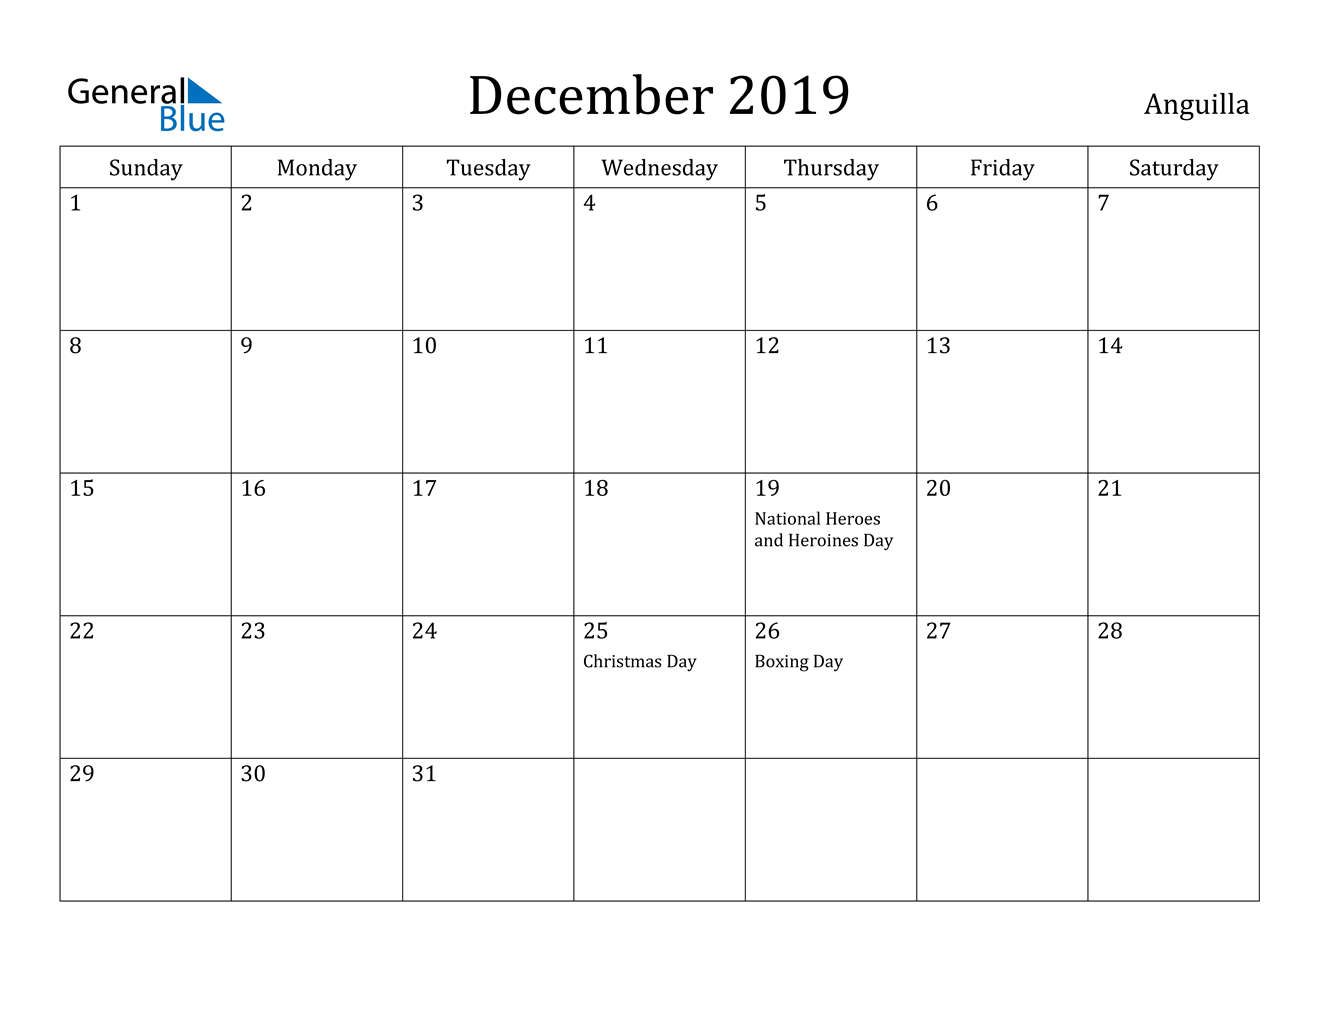 Image of December 2019 Anguilla Calendar with Holidays Calendar